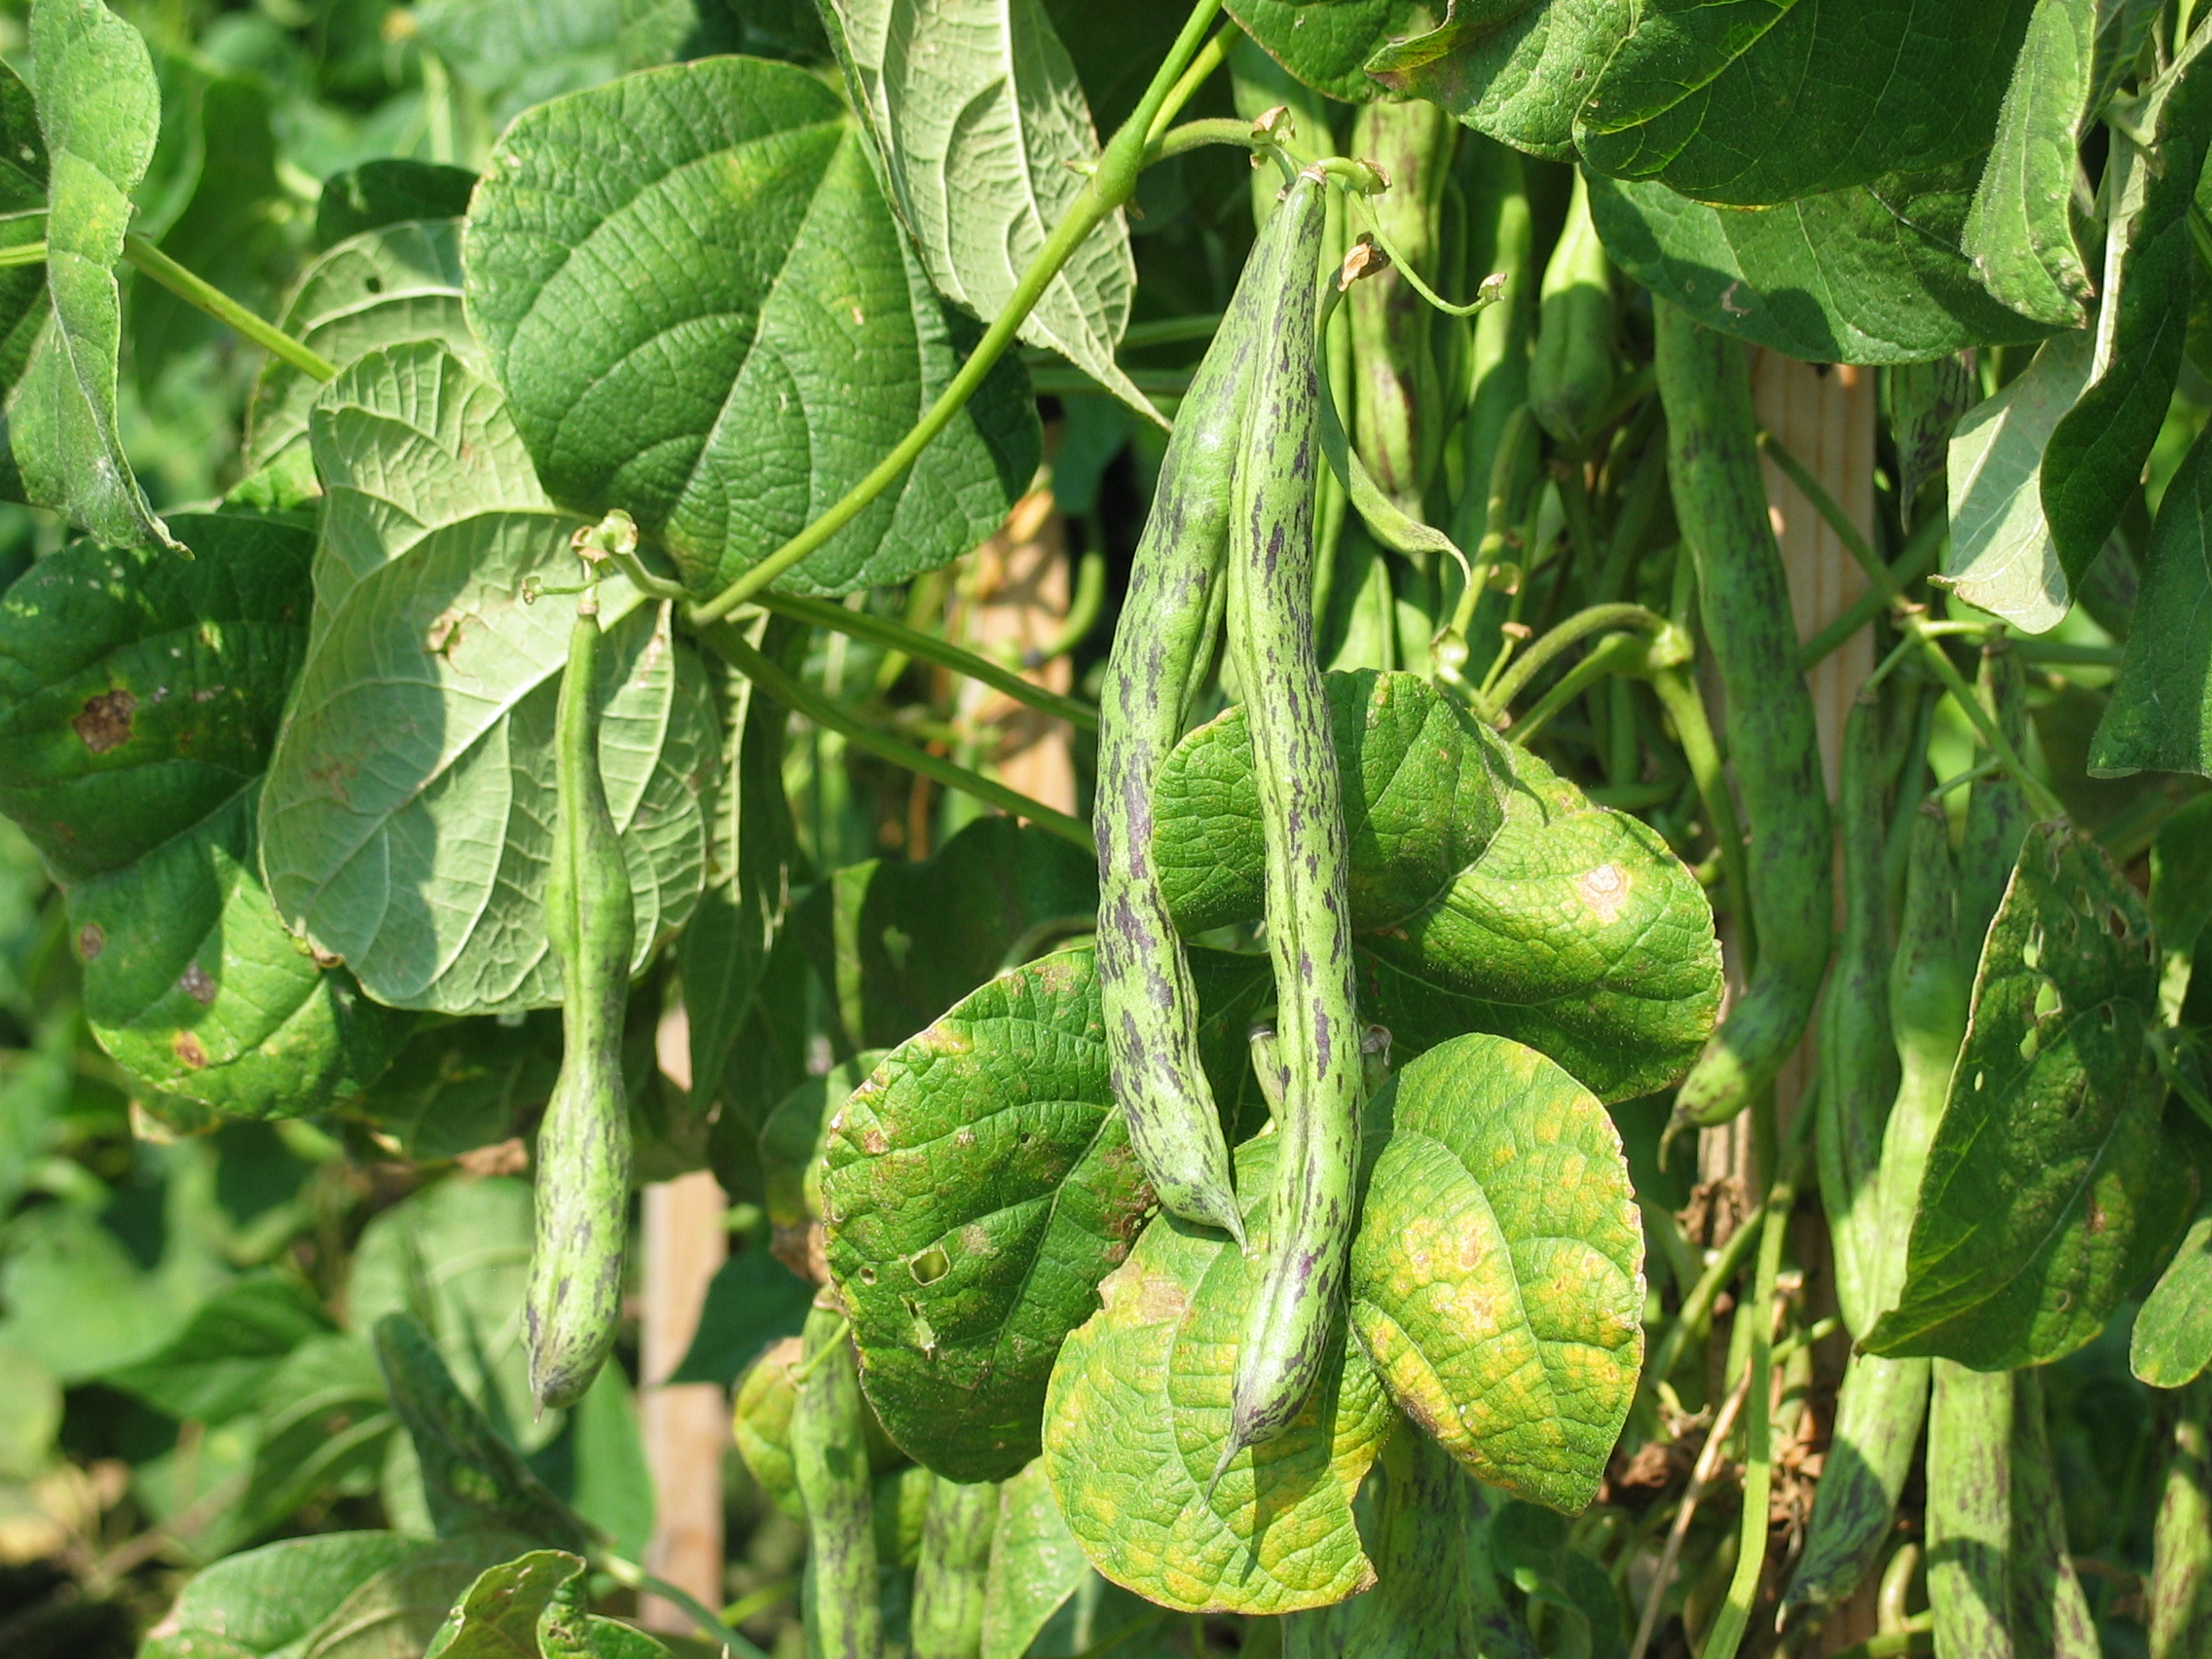 image of green purple striped Louisiana bean pods on the vine